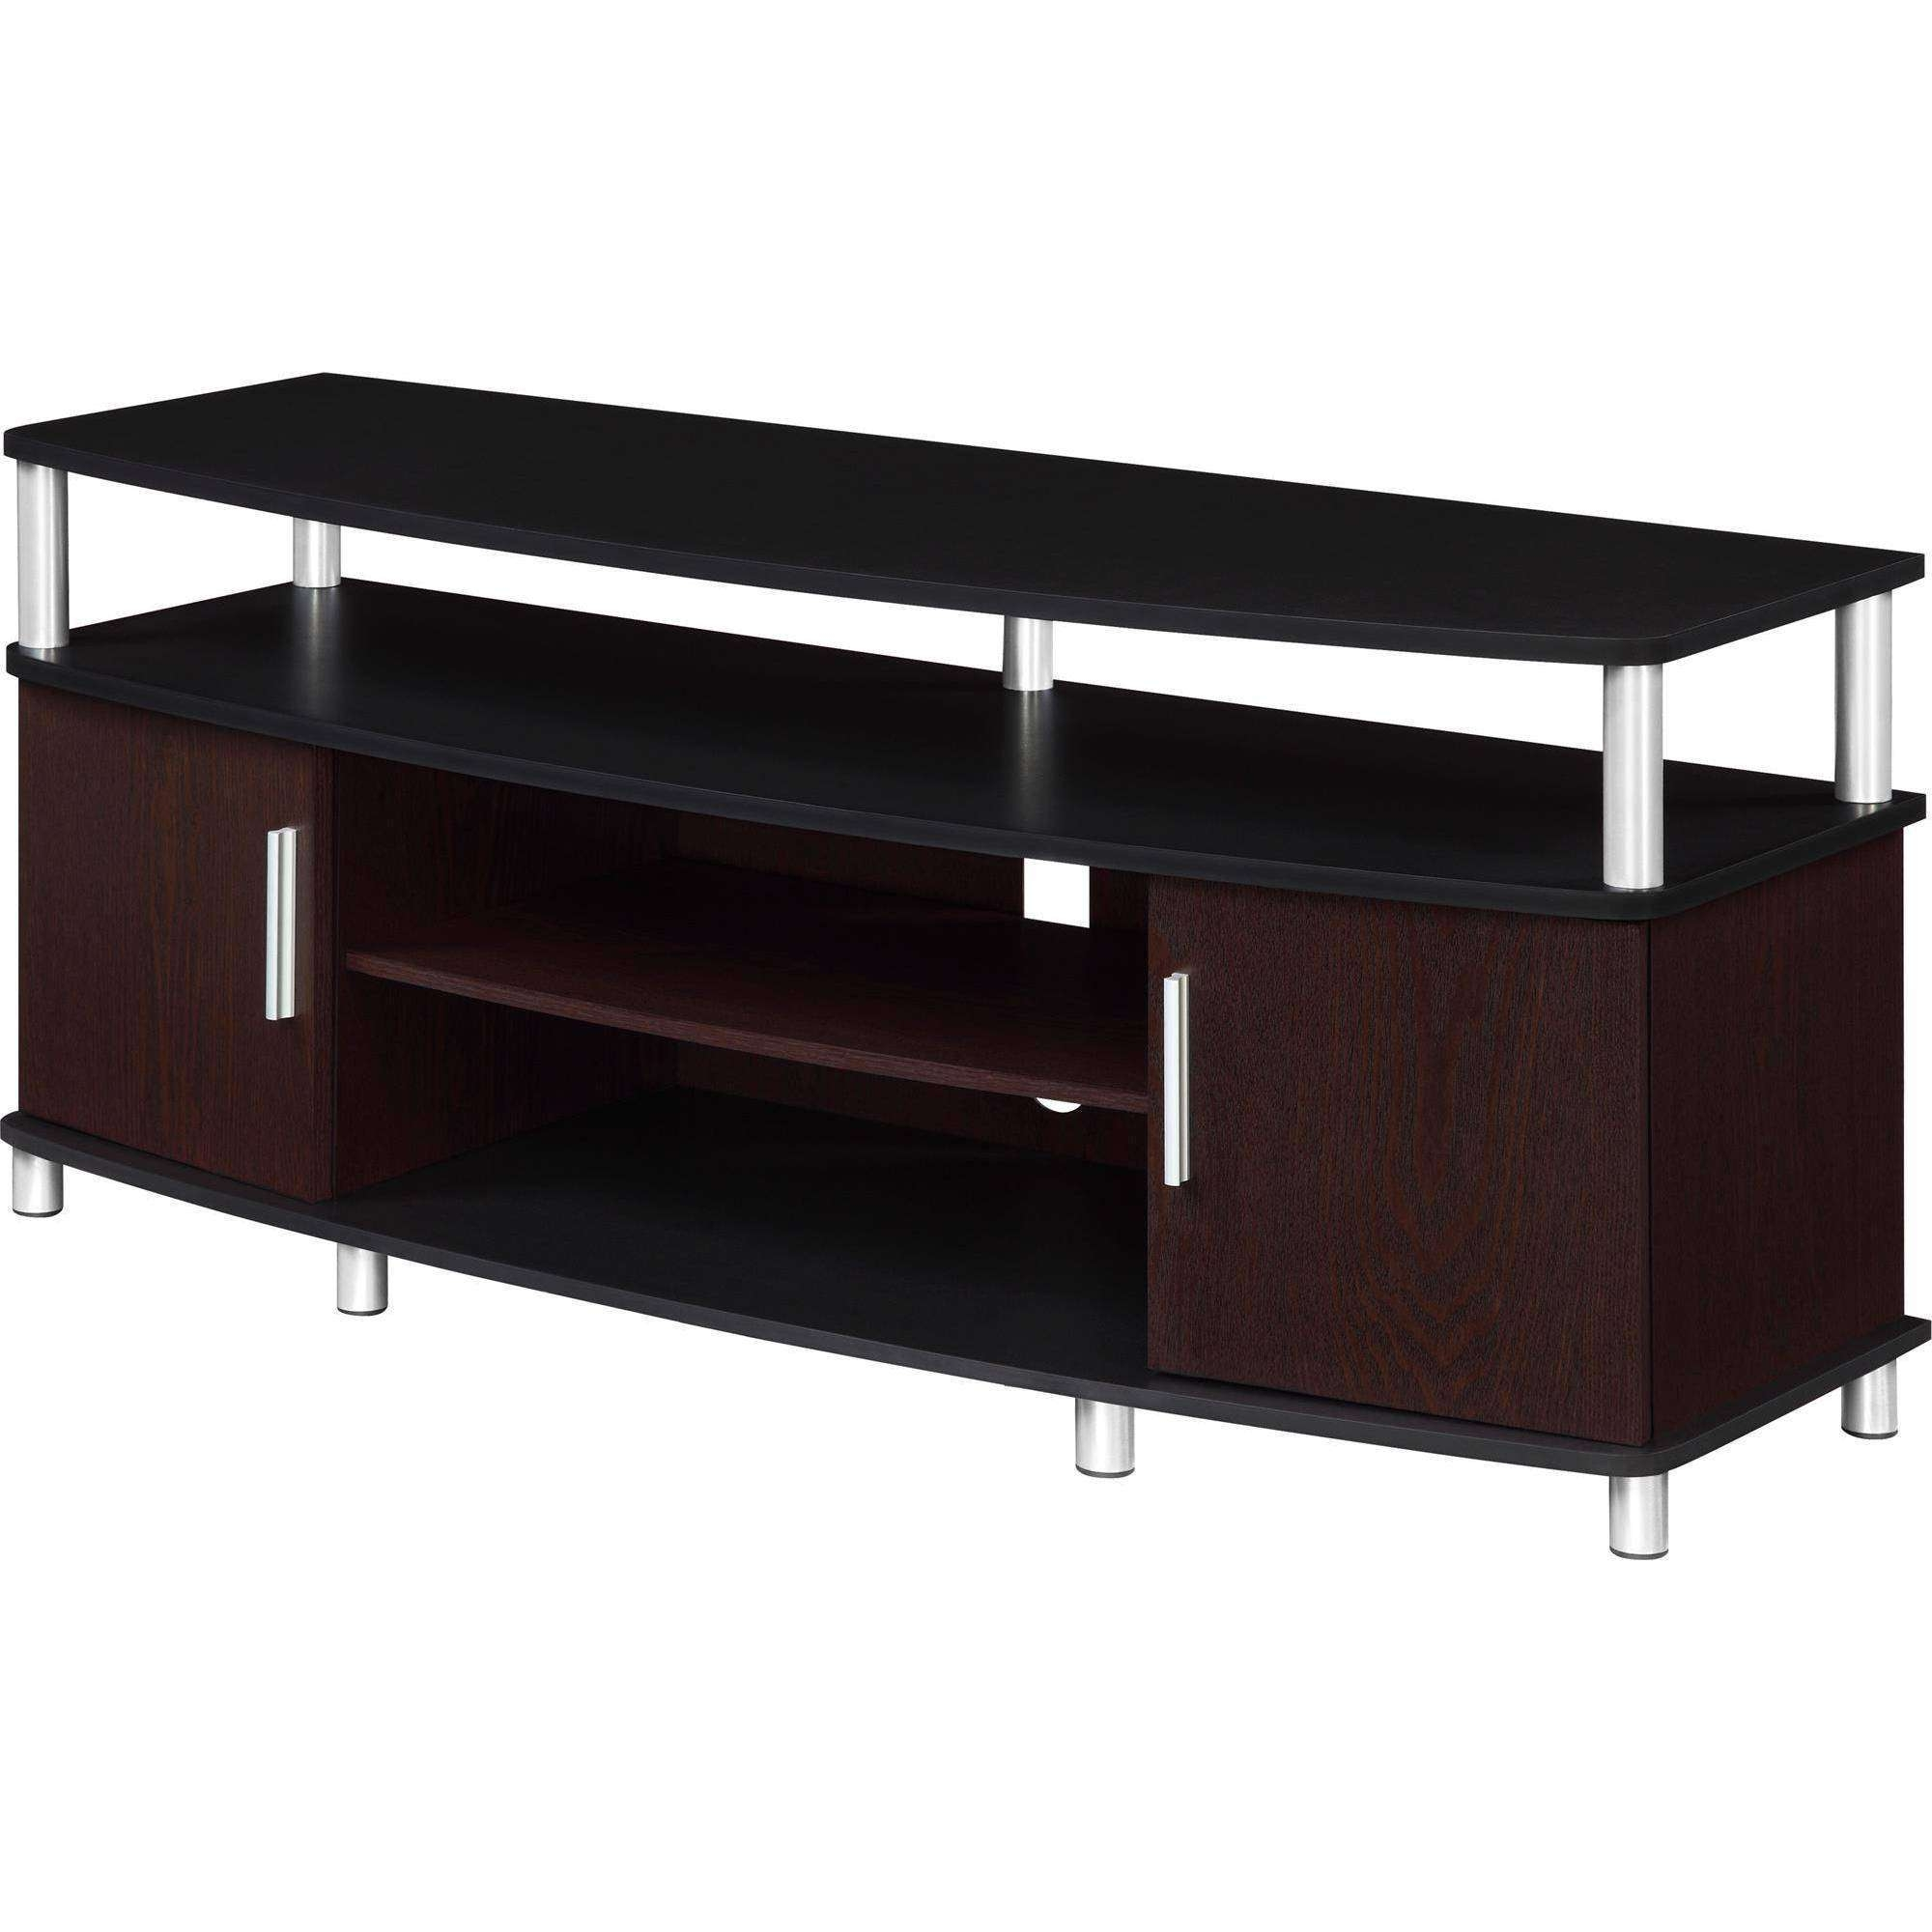 Tv : Modern Low Tv Stands Horrifying Modern Low Plasma Tv Stand With Modern Low Tv Stands (View 17 of 20)